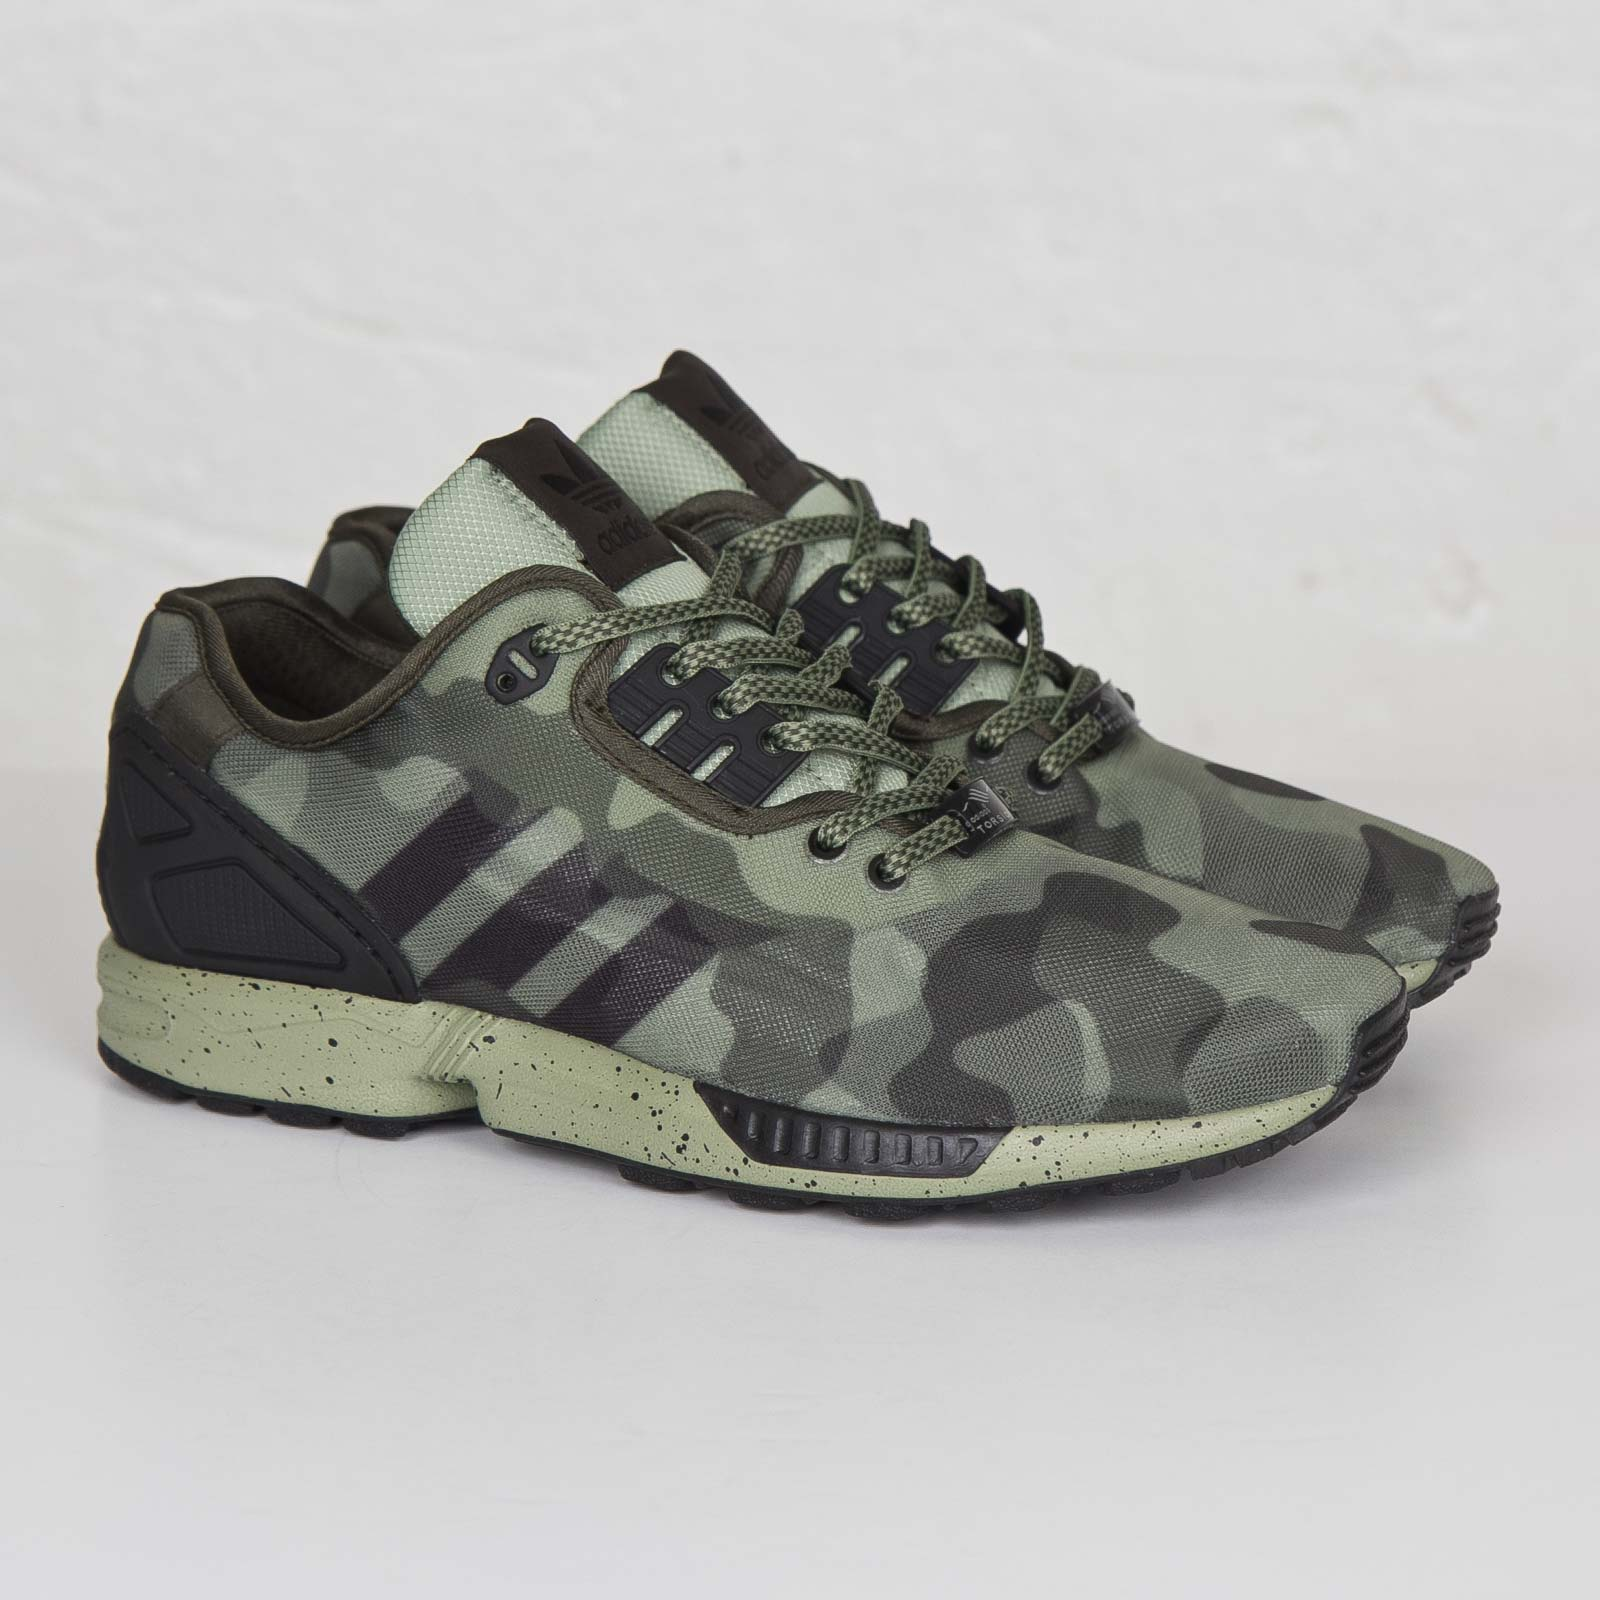 meet 340d5 27e4d adidas ZX Flux Deconstructed - M19686 - Sneakersnstuff ...